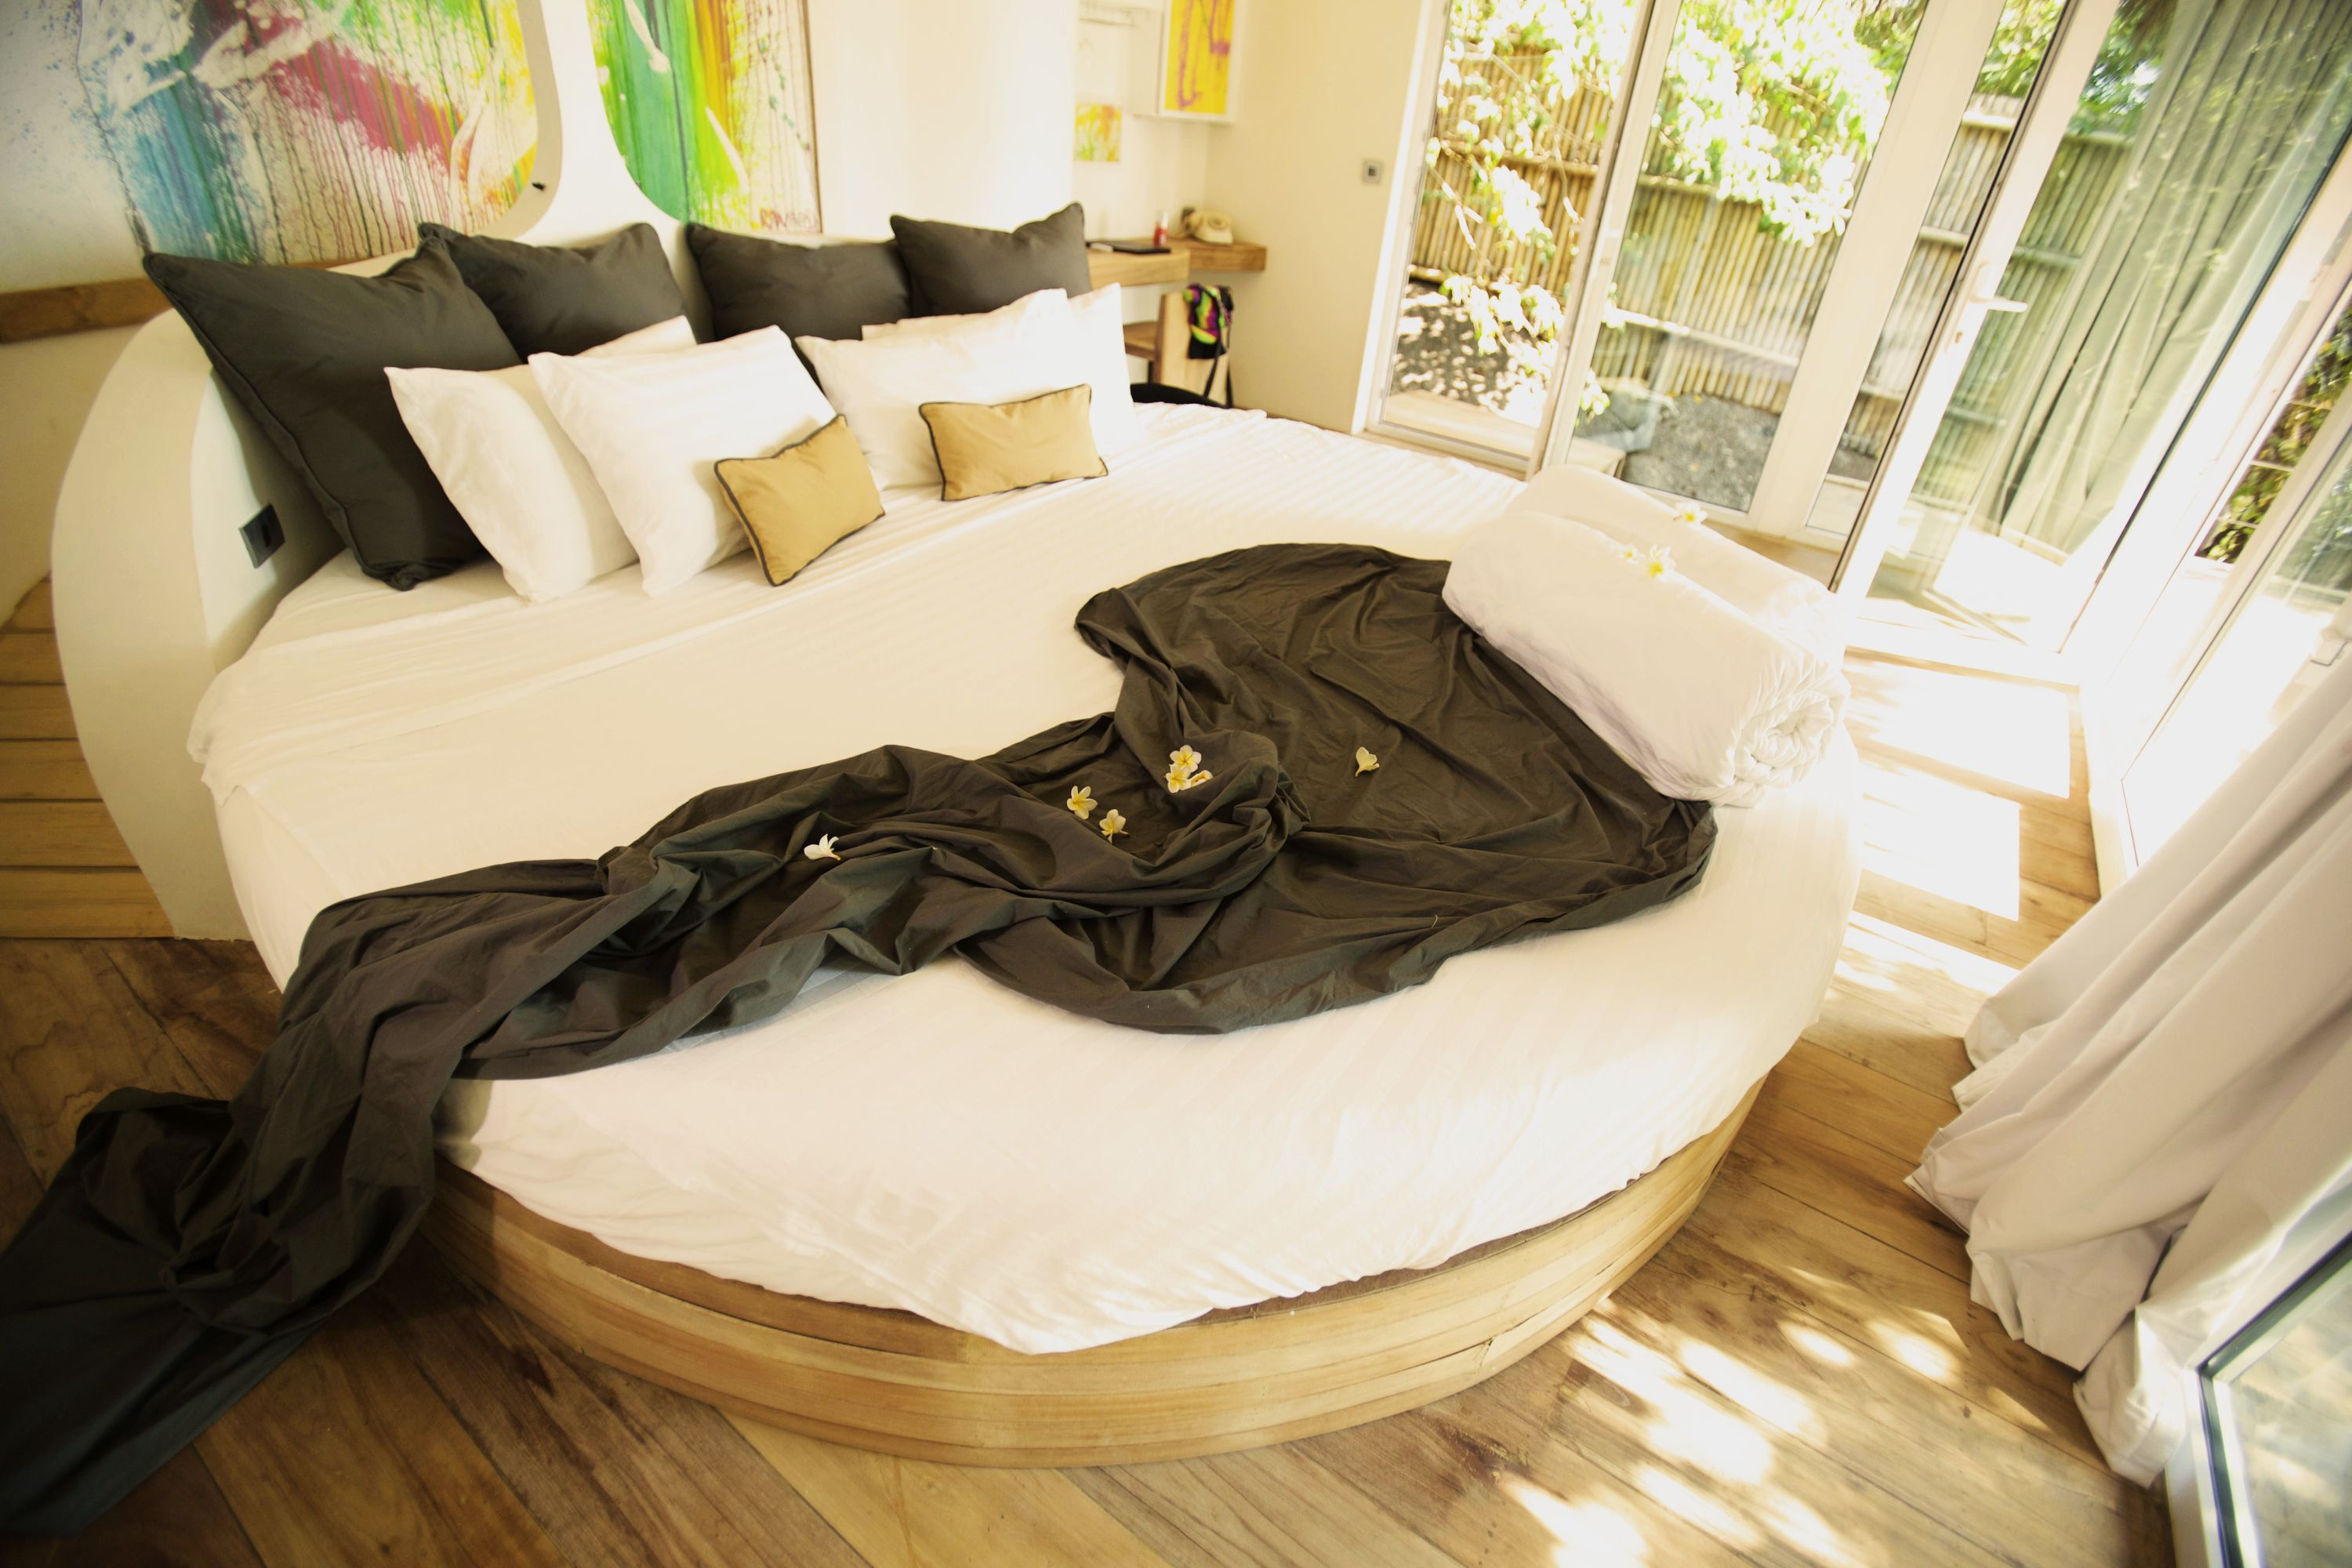 Round Bed, God Sized Bed, 2,80M Round Bed, Huge Bed,